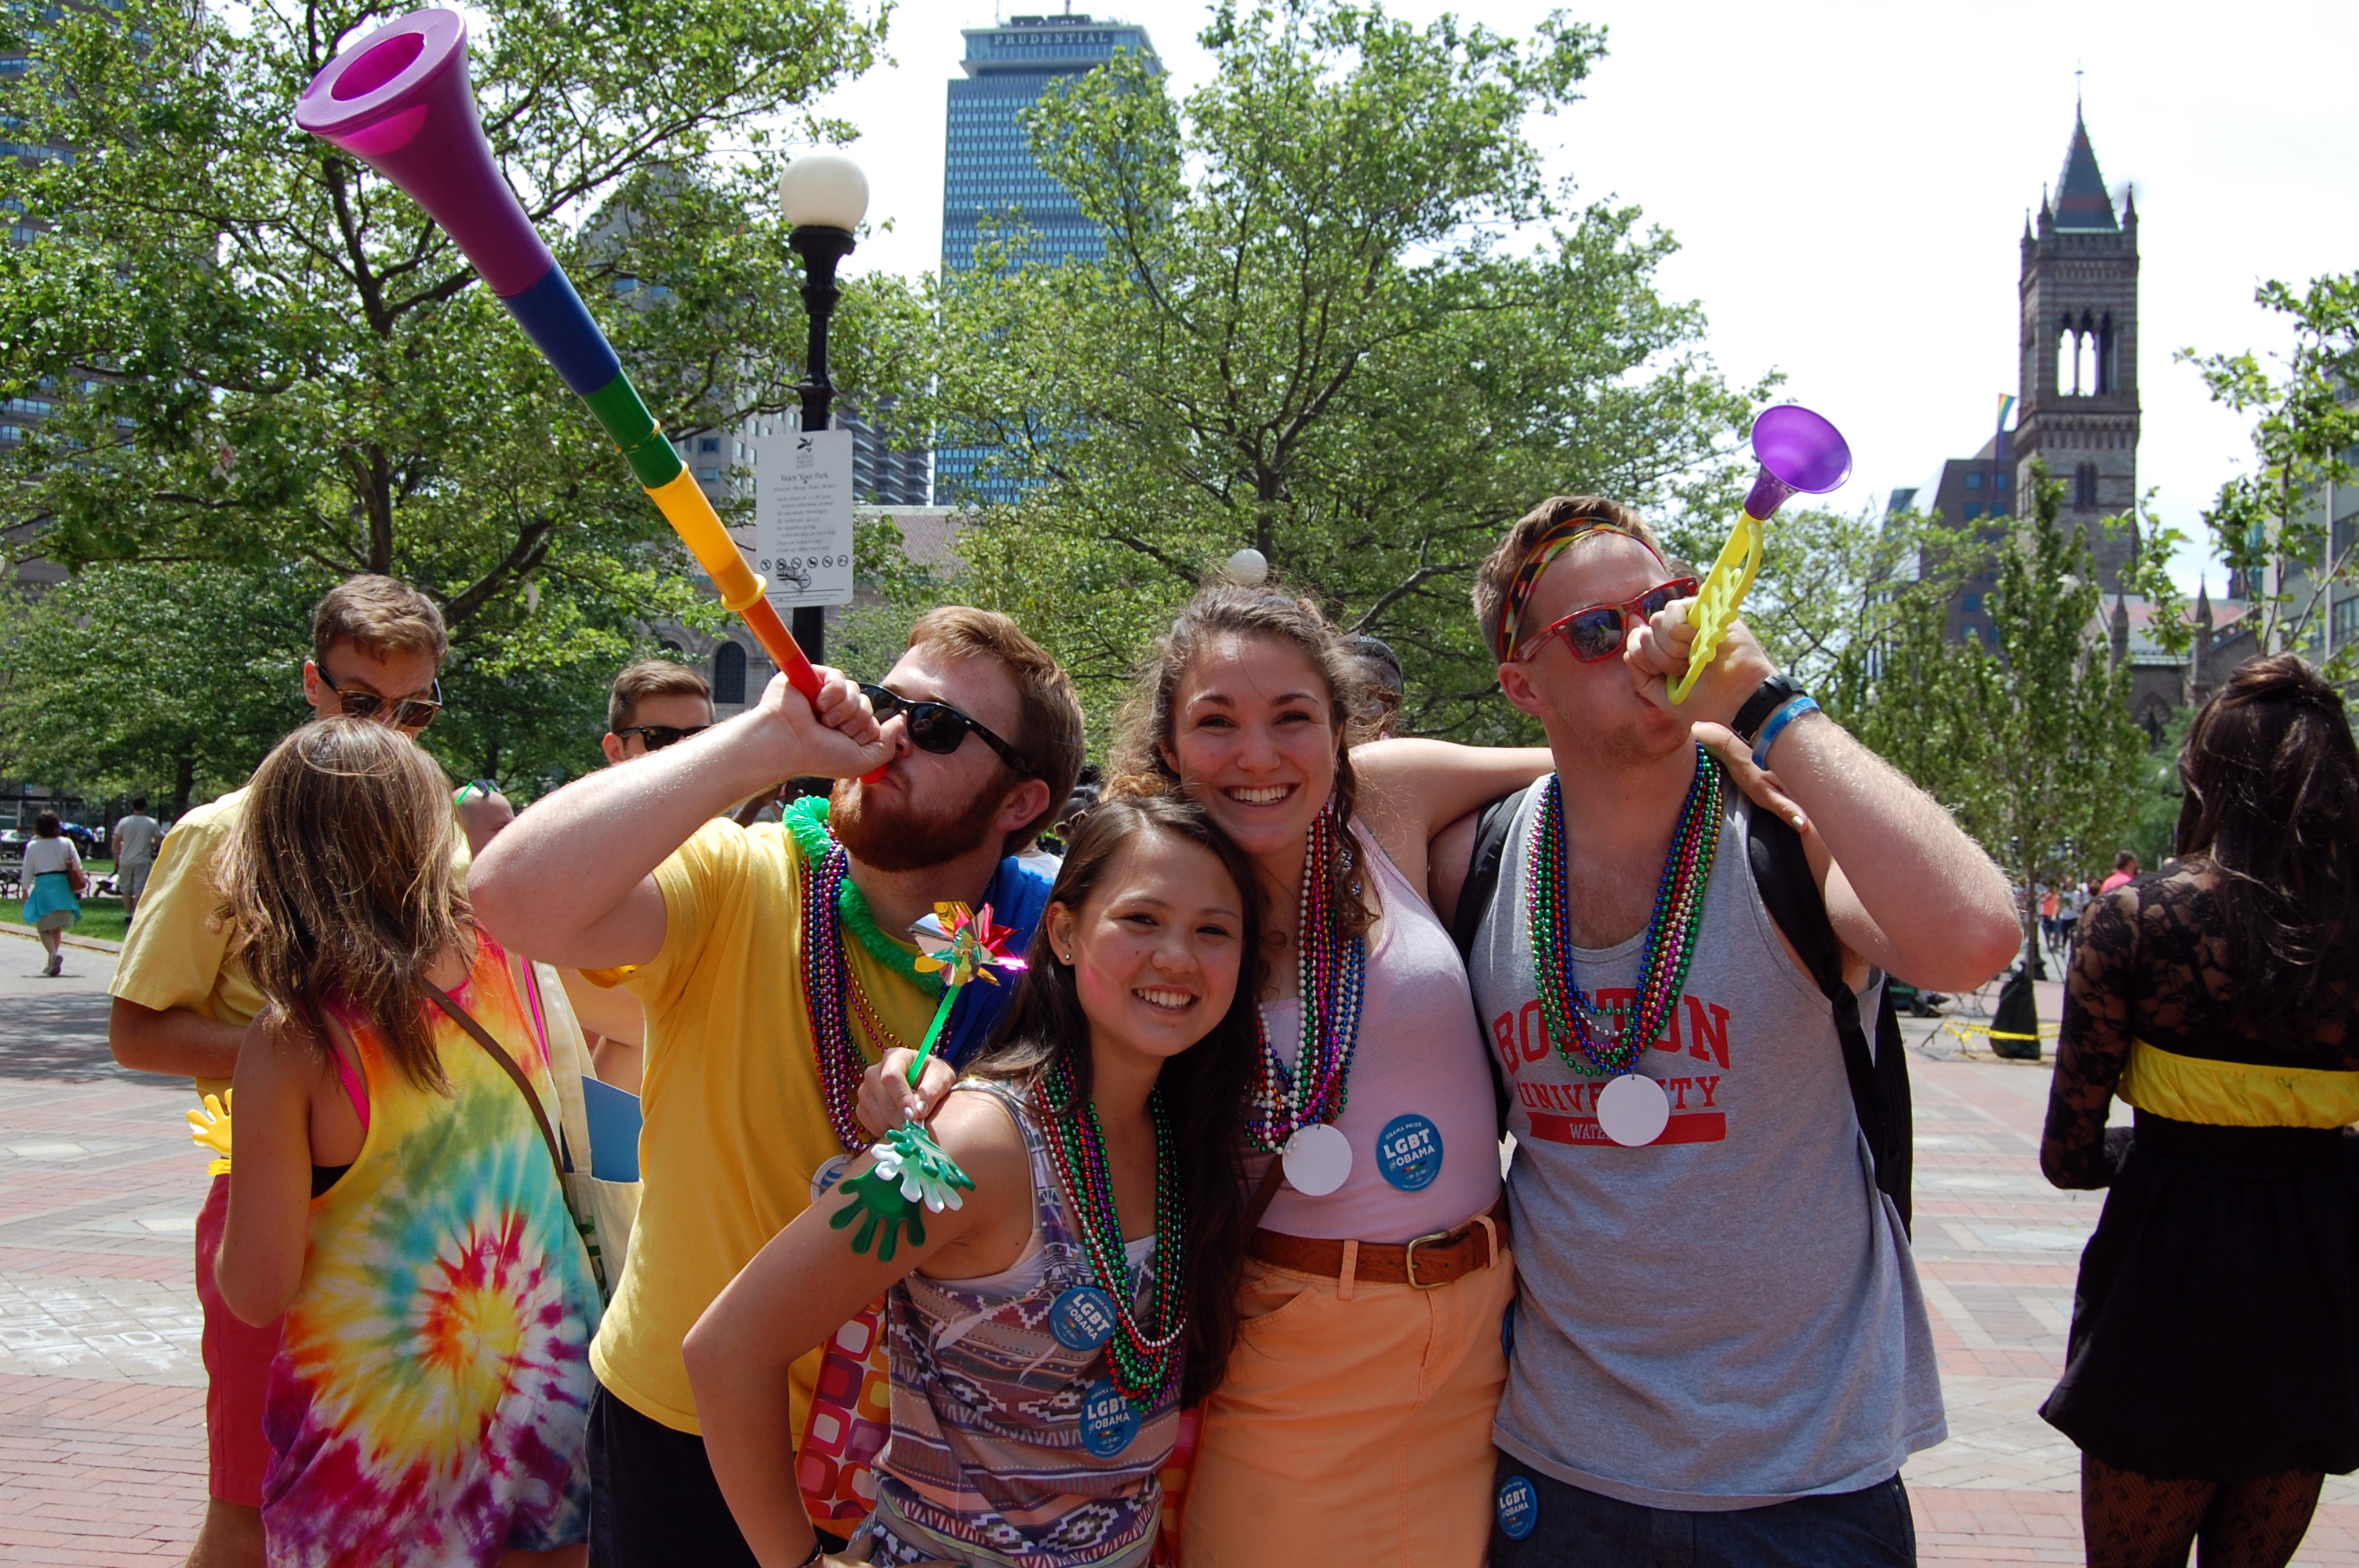 Boston University students show their support by donning colorful beads and using noise makers.